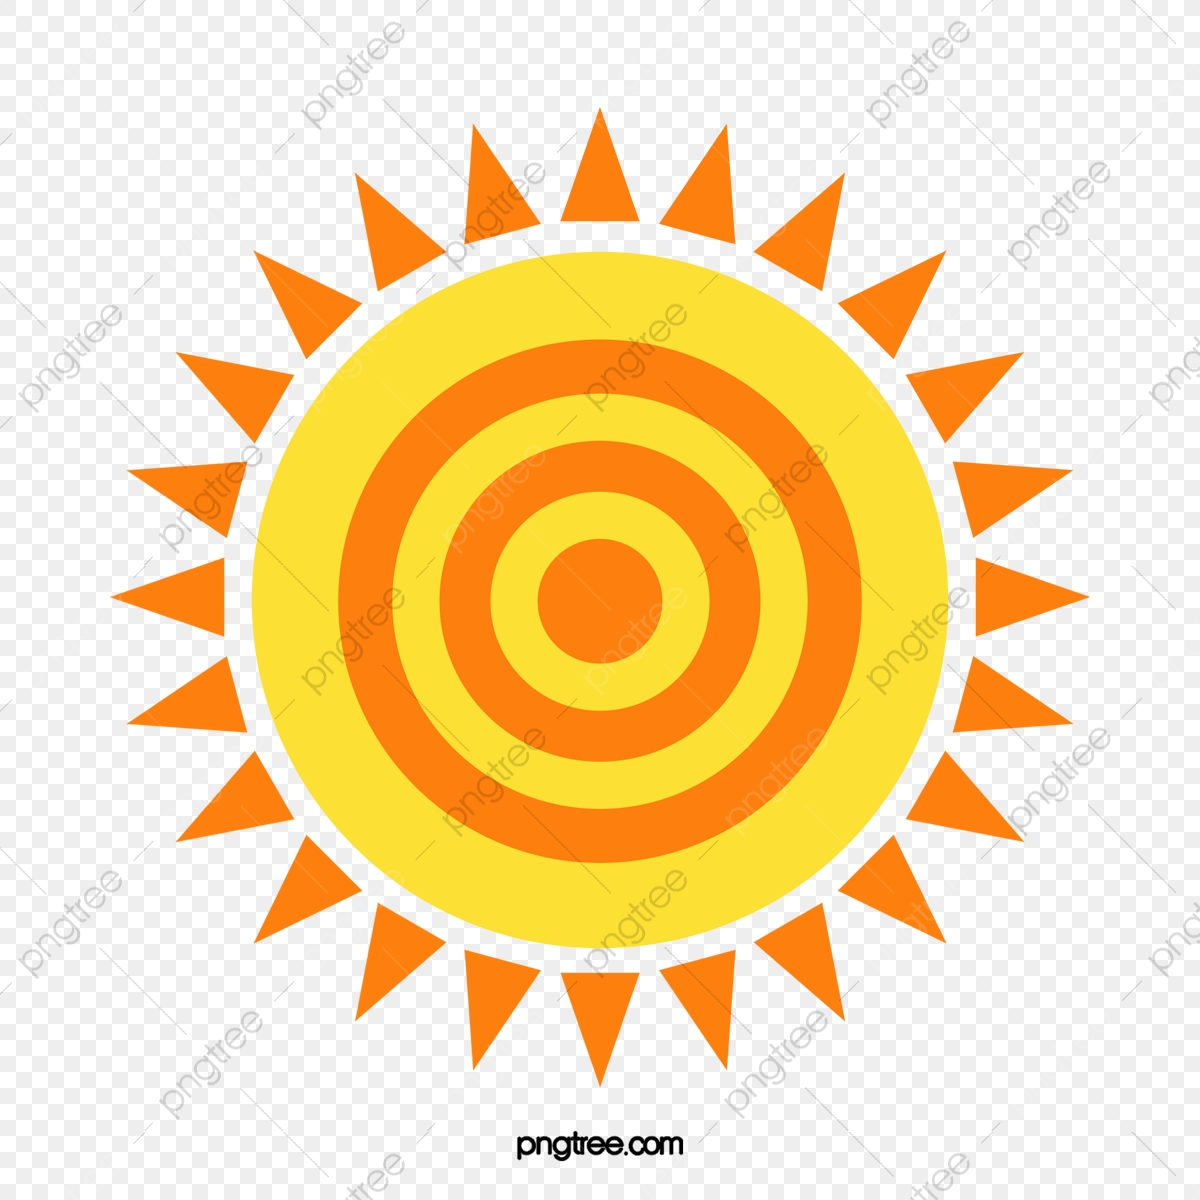 Clipart sun pattern. Drawing watercolor png and